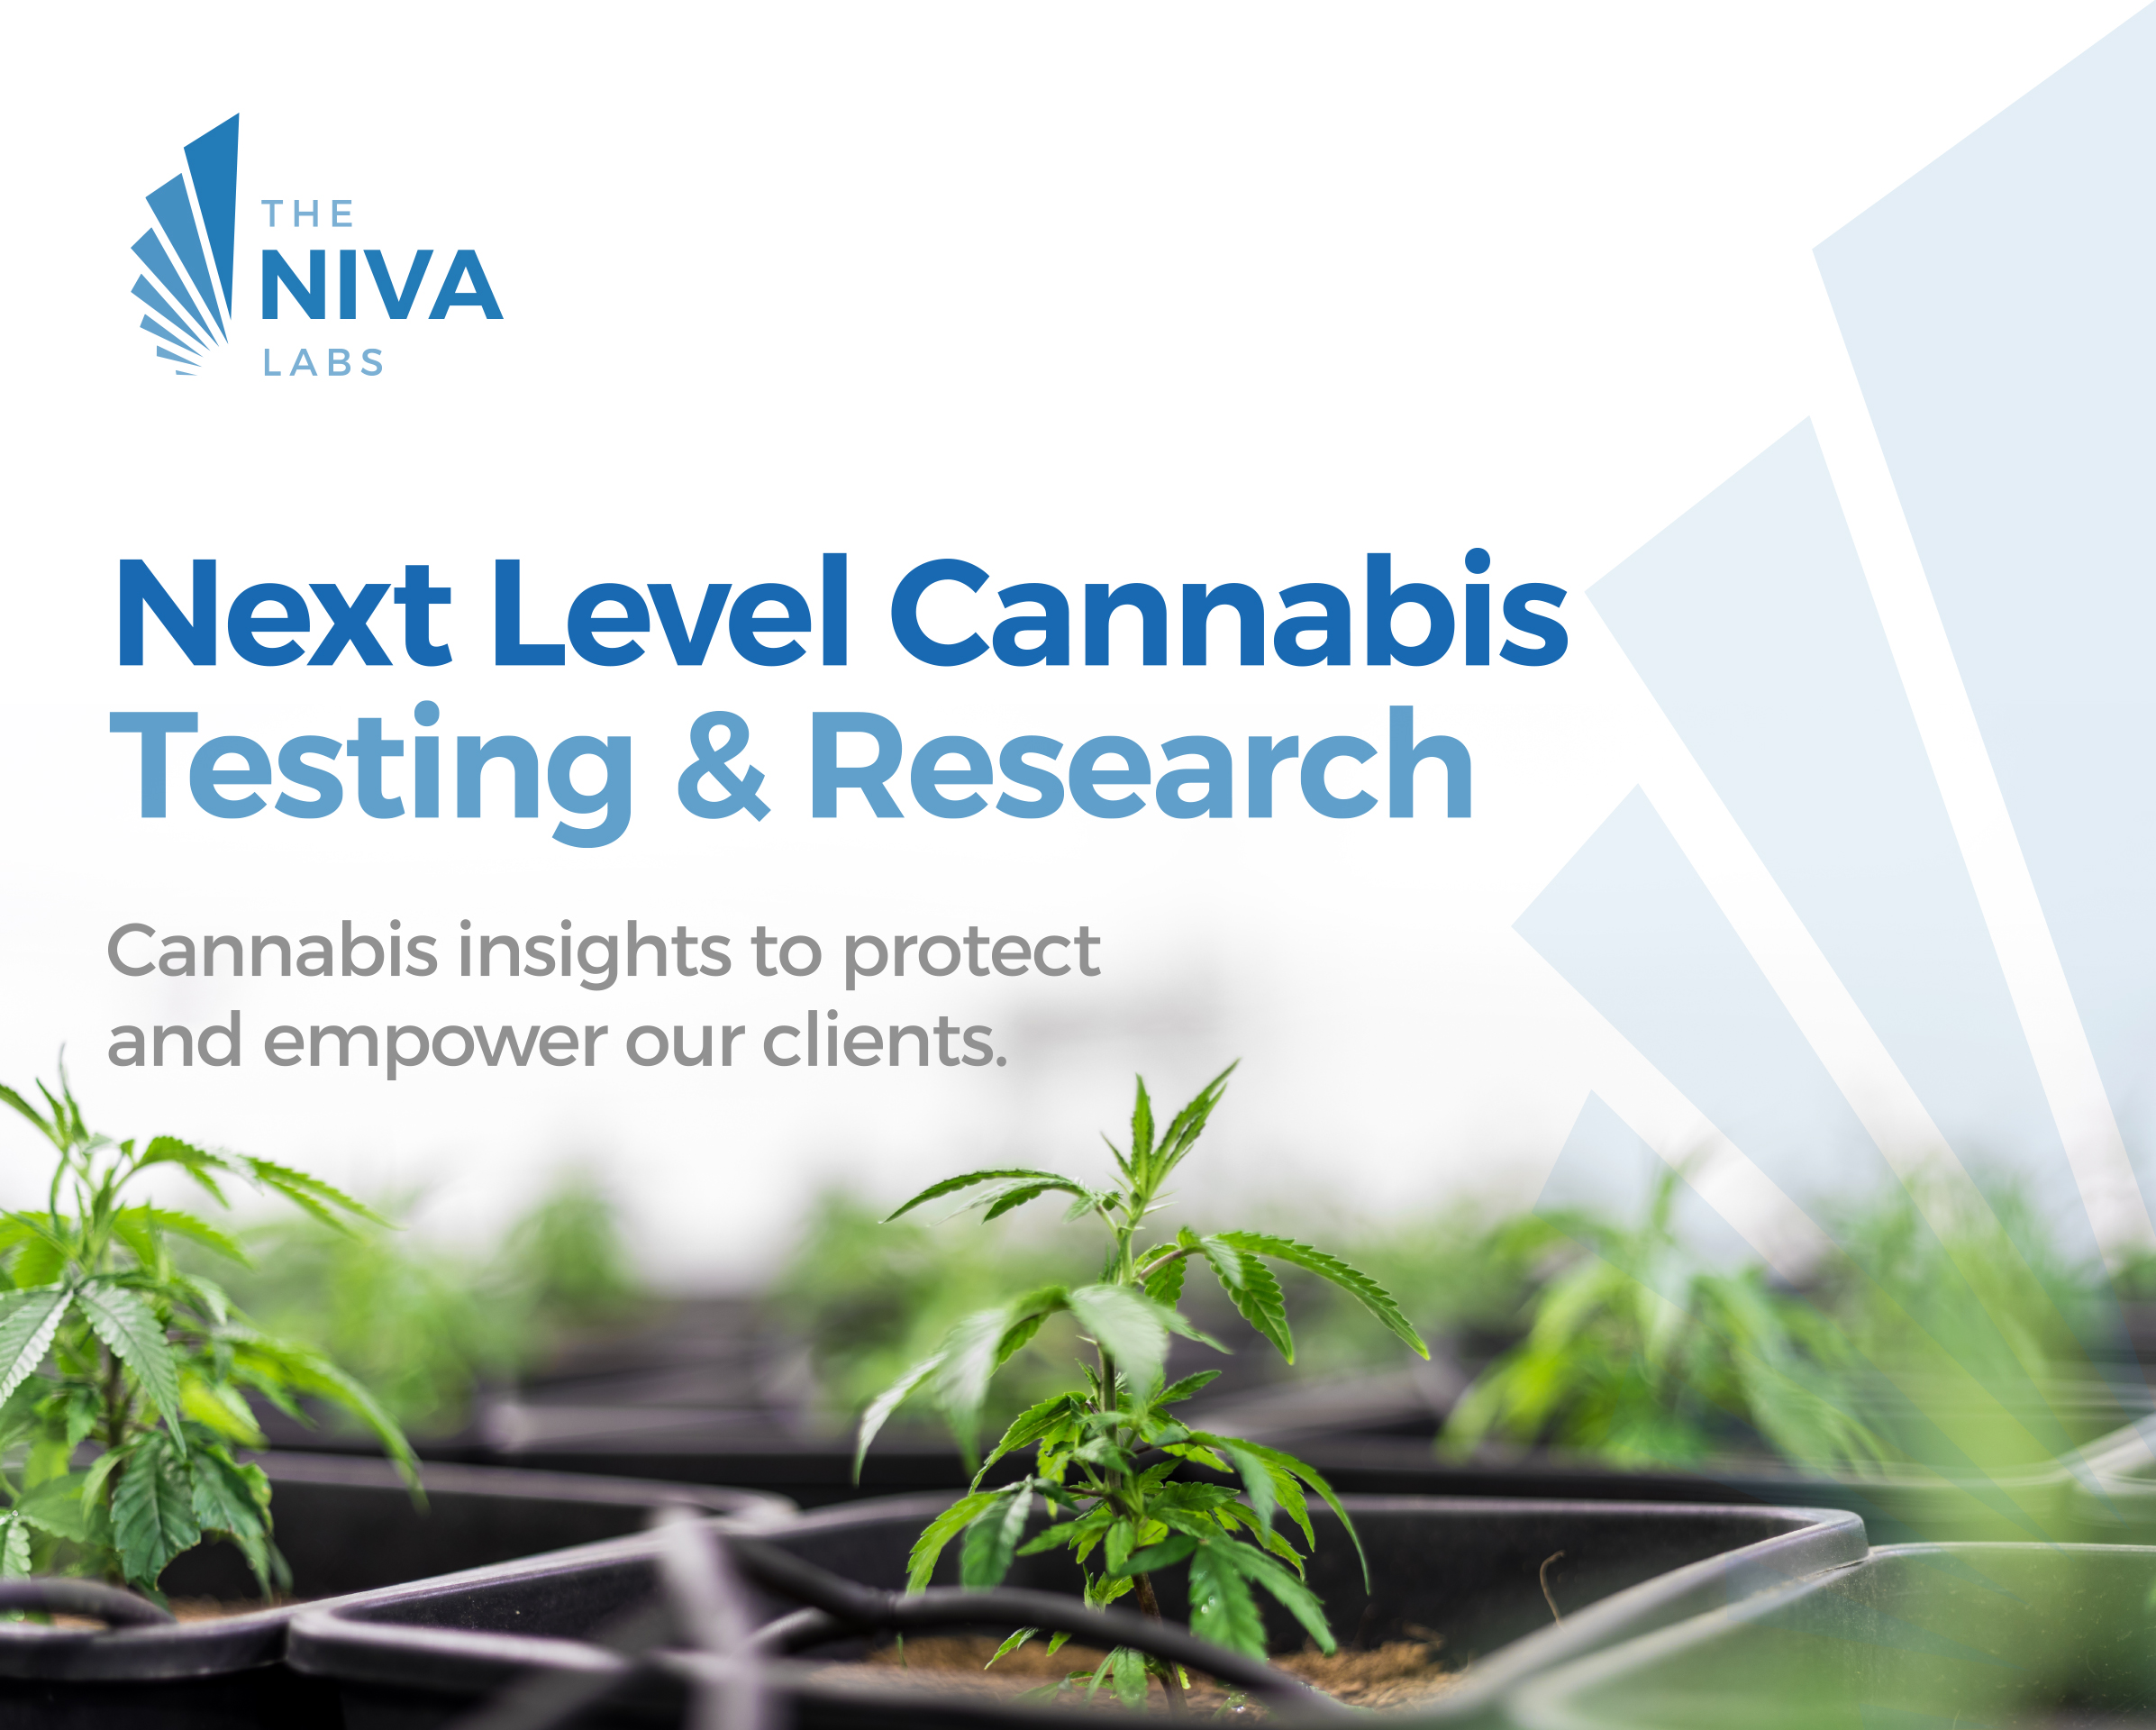 Cannabis plant background with The Niva Labs logo: Next Level Cannabis Testing and Research. Cannabis insights to protect and empower our clients.